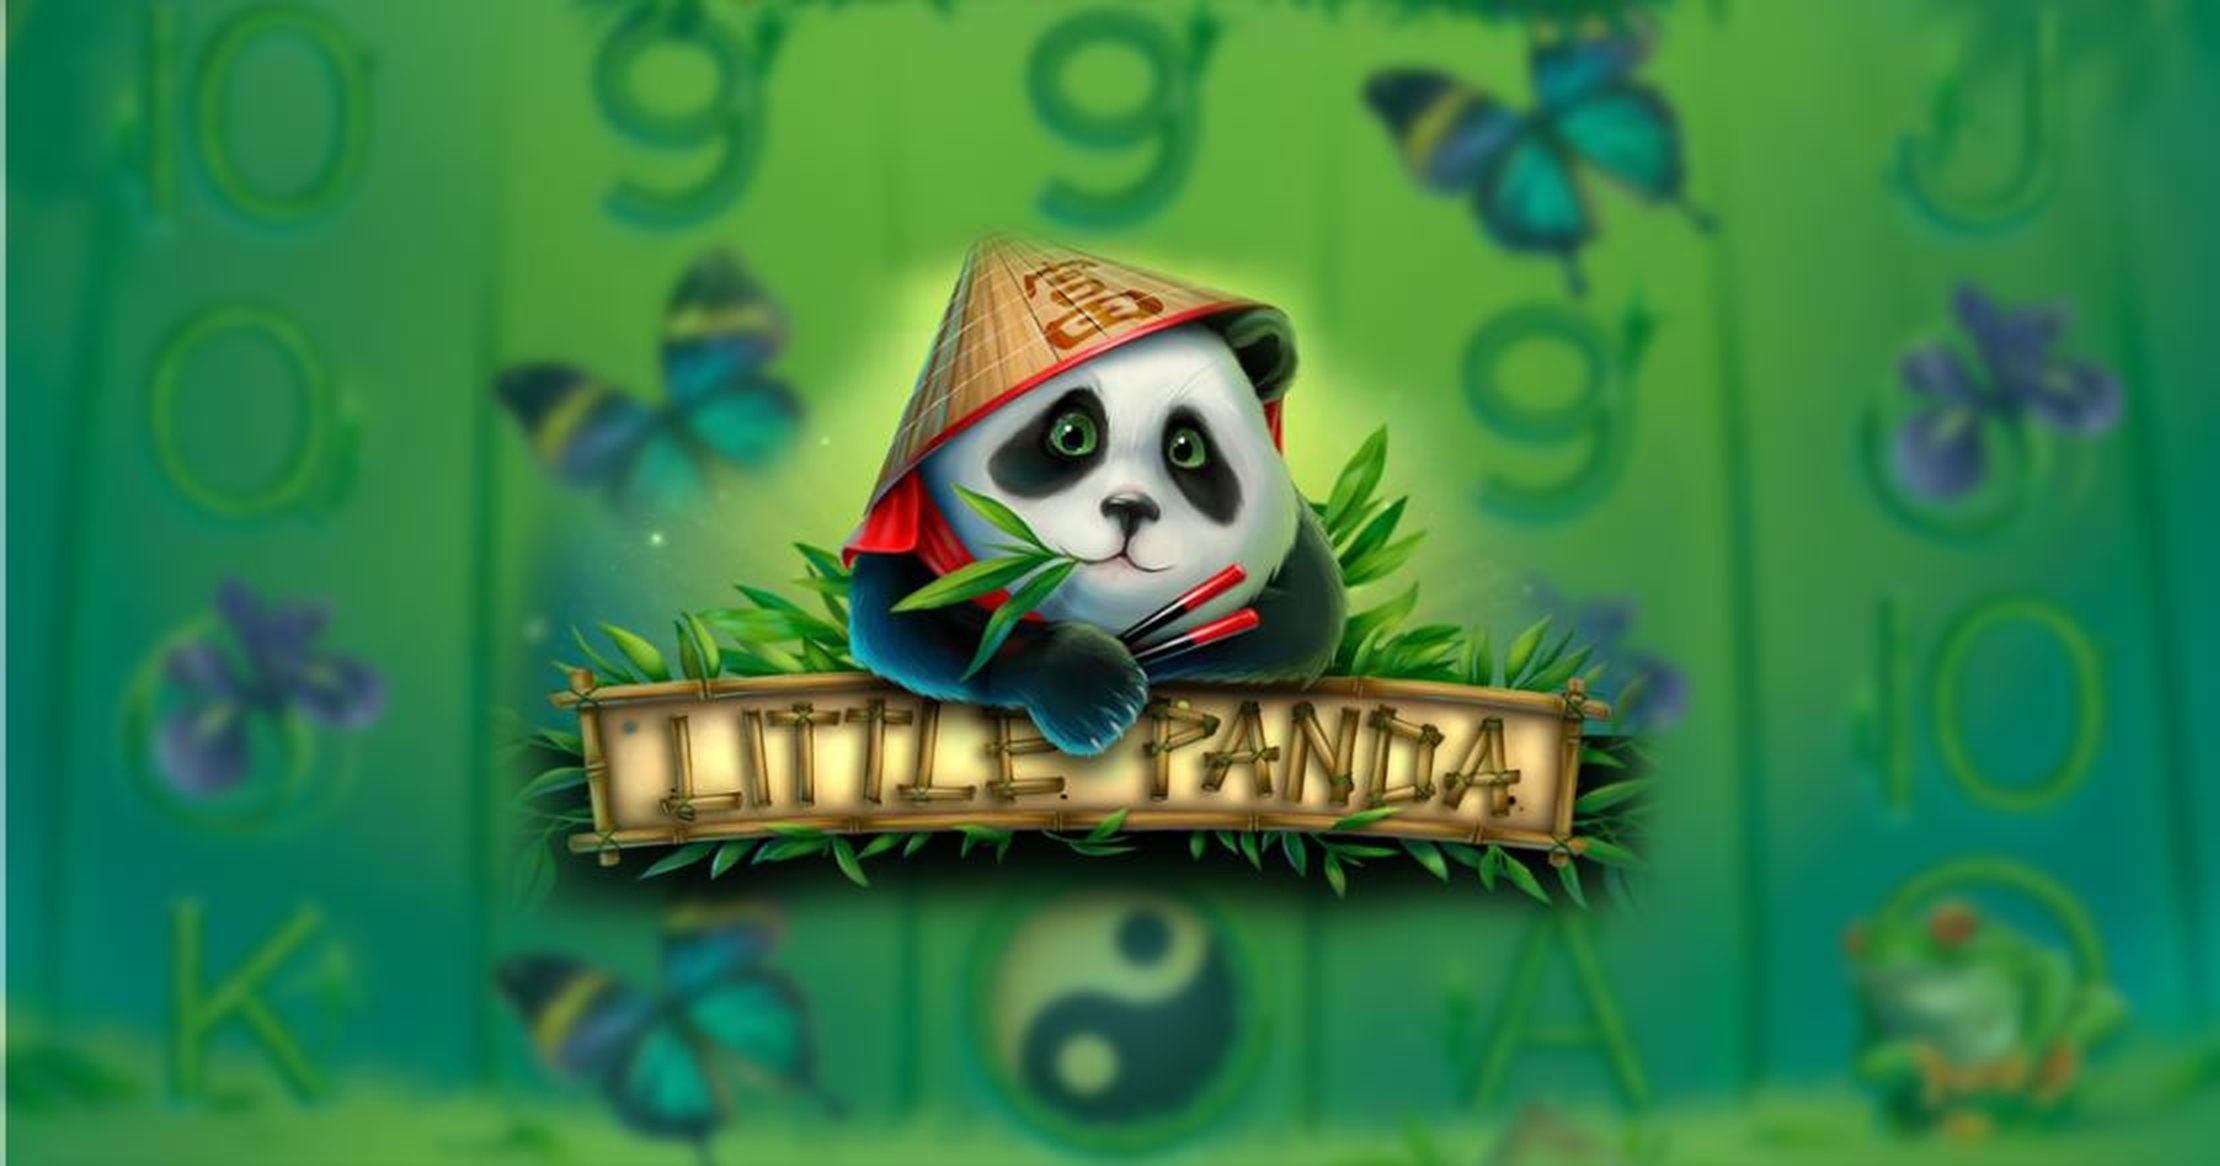 The Little Panda Online Slot Demo Game by Endorphina